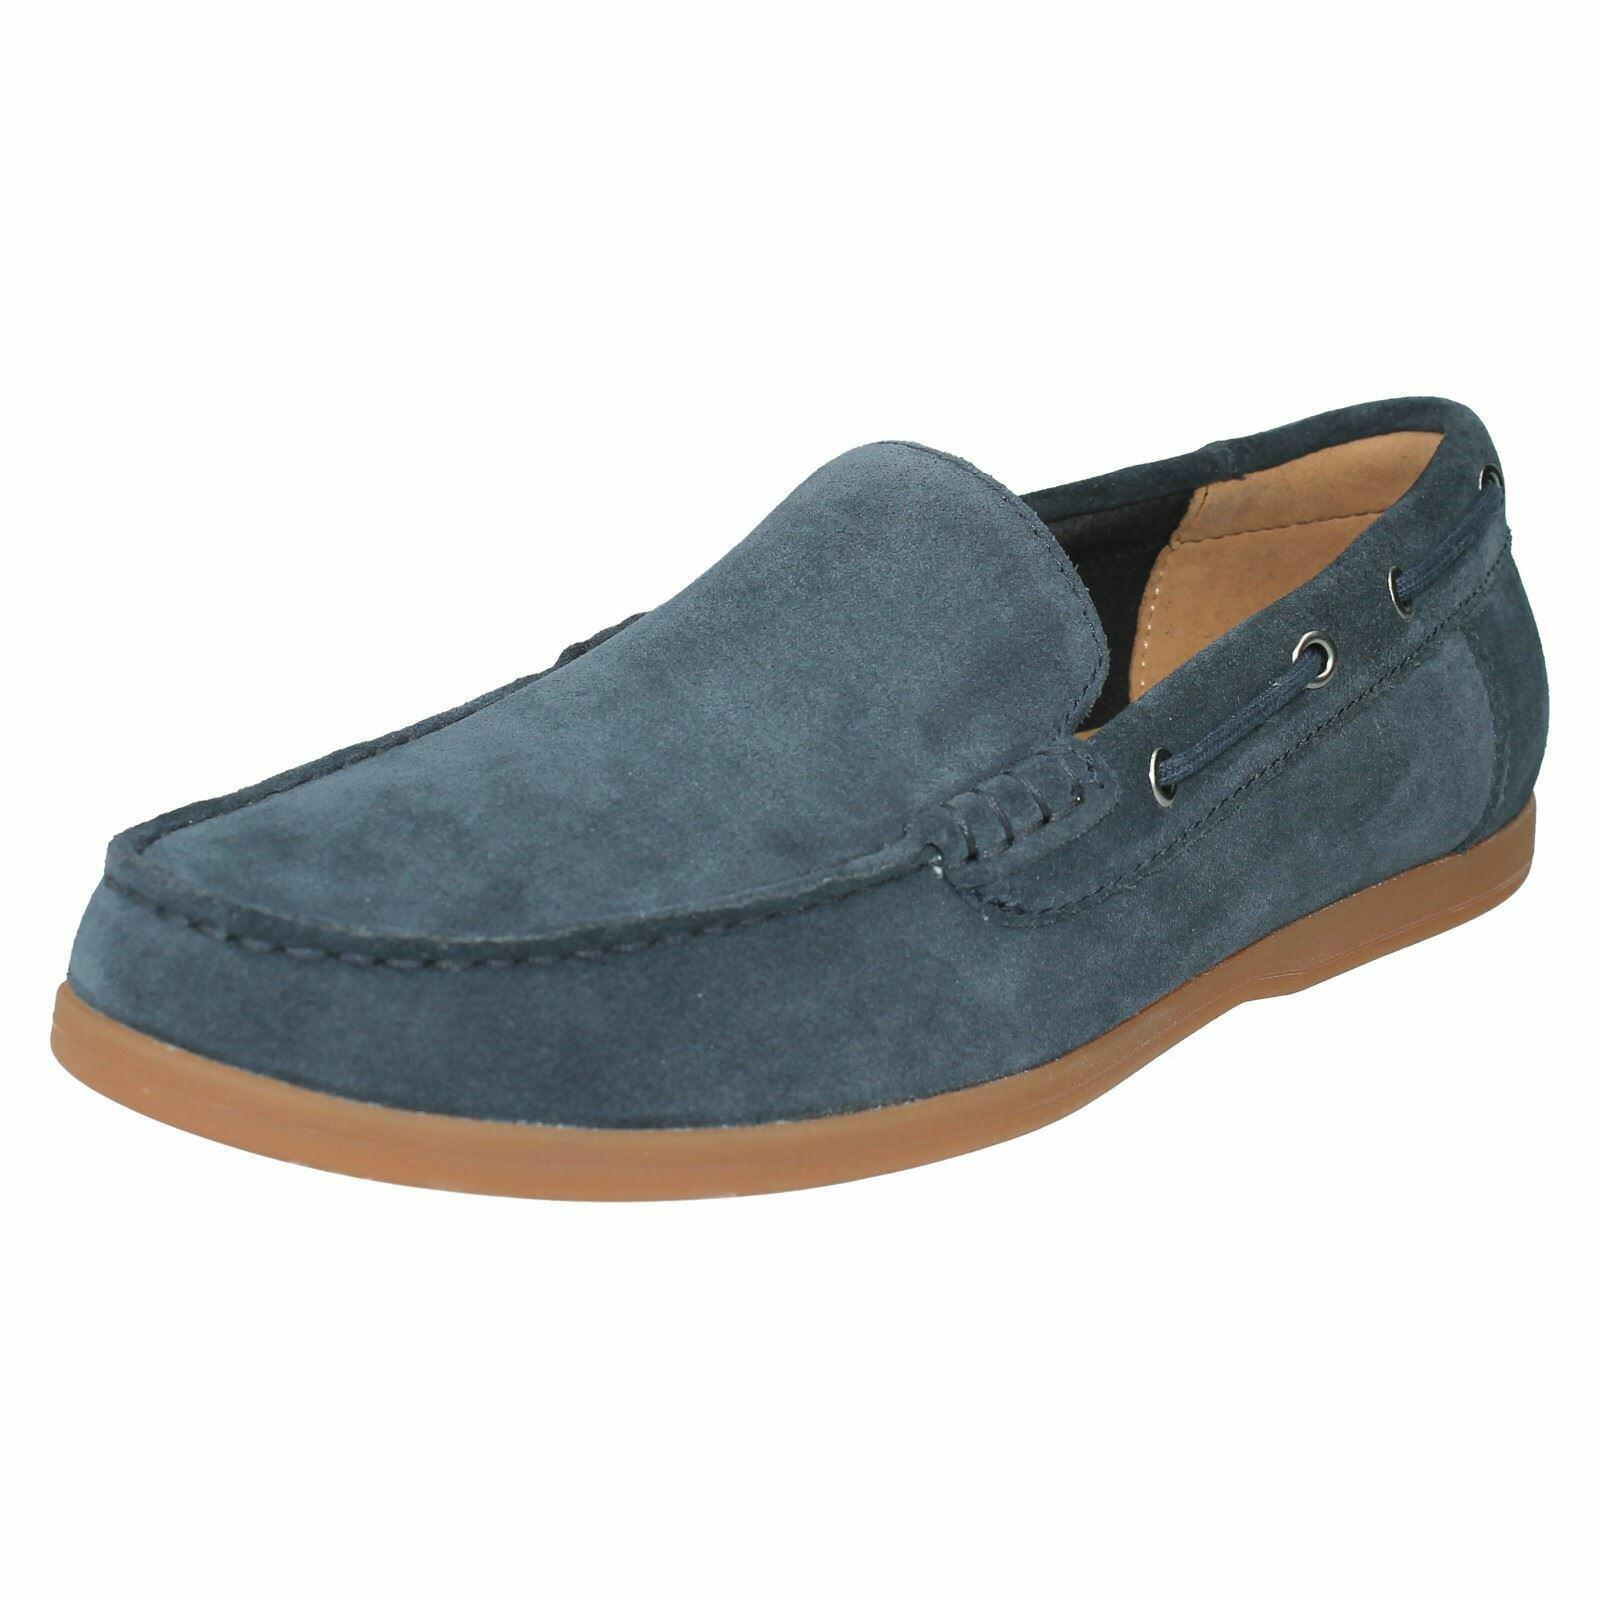 Clarks Morven Sun Navy Suede Slip On shoes